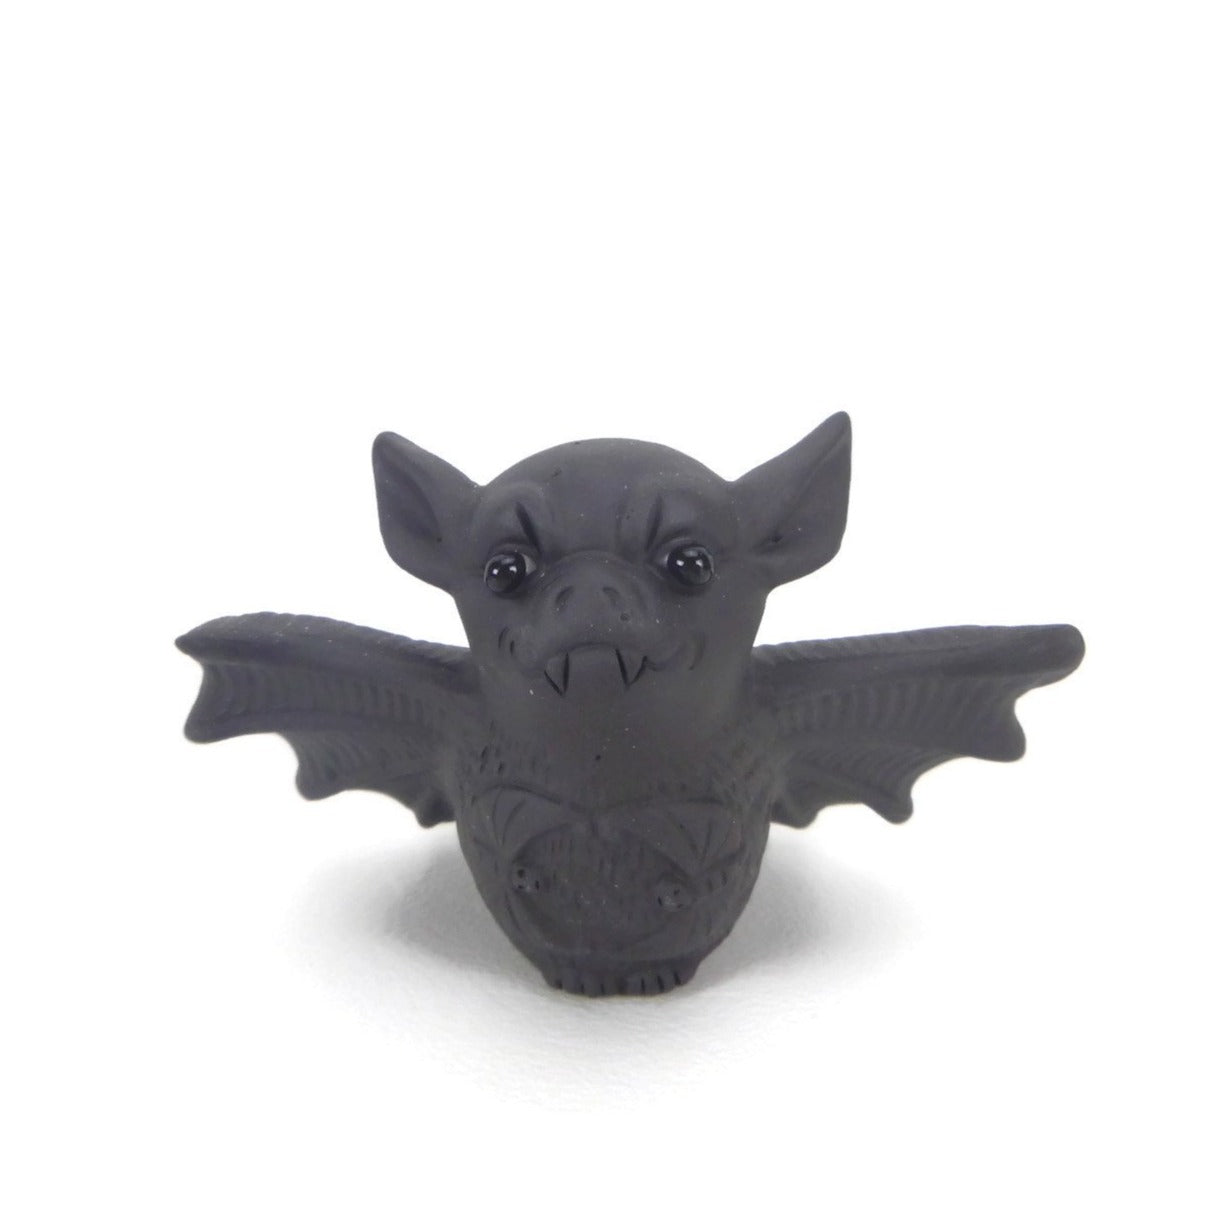 Bat Tea Pet